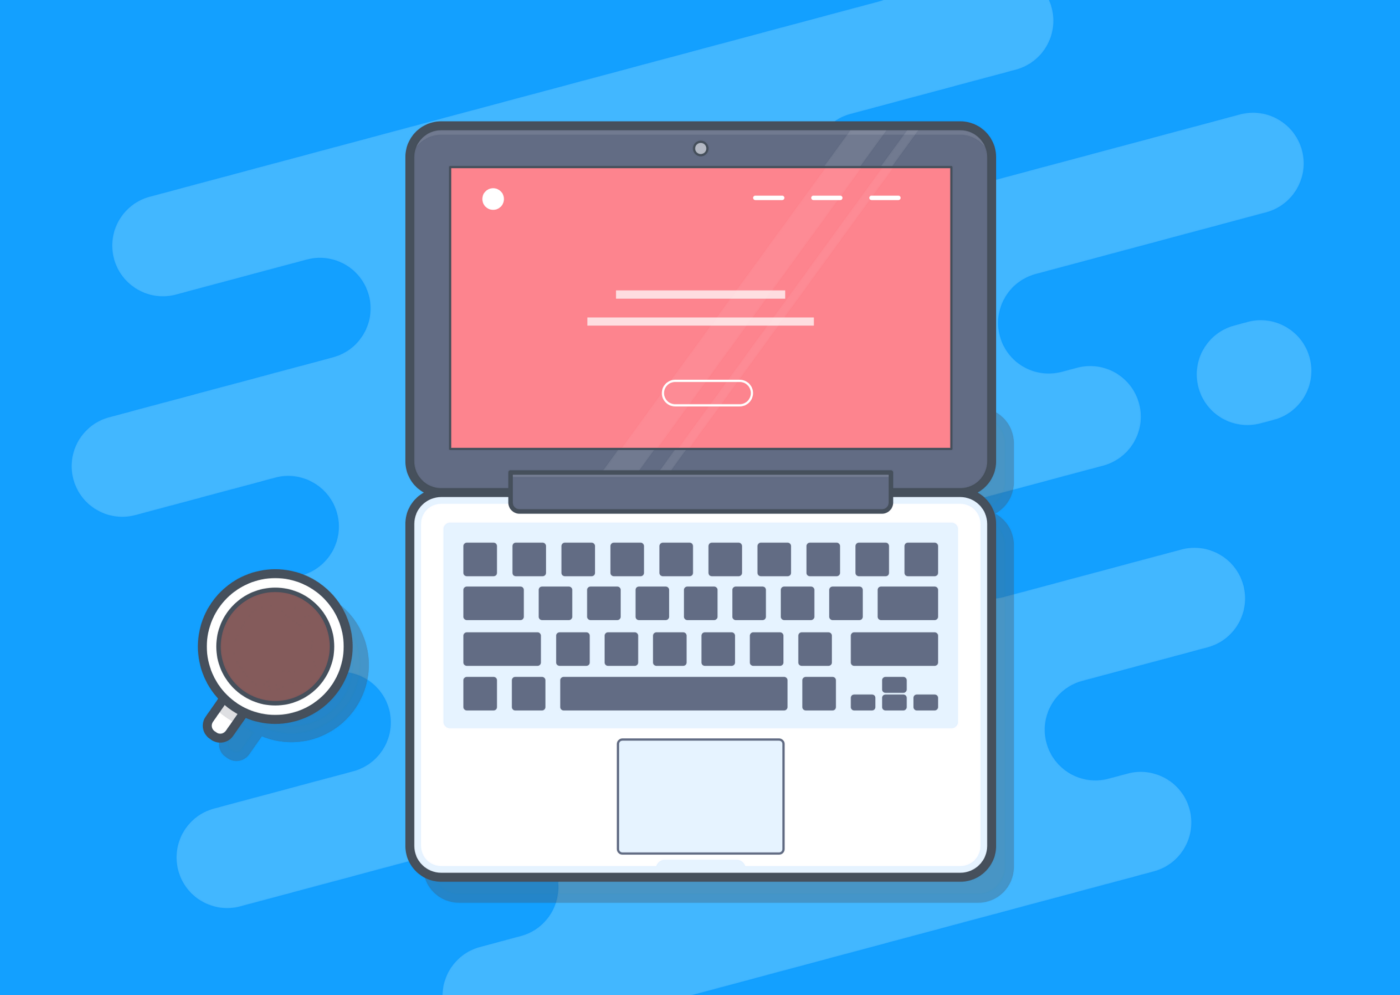 A coffee mug and a laptop computer against a sky blue background.